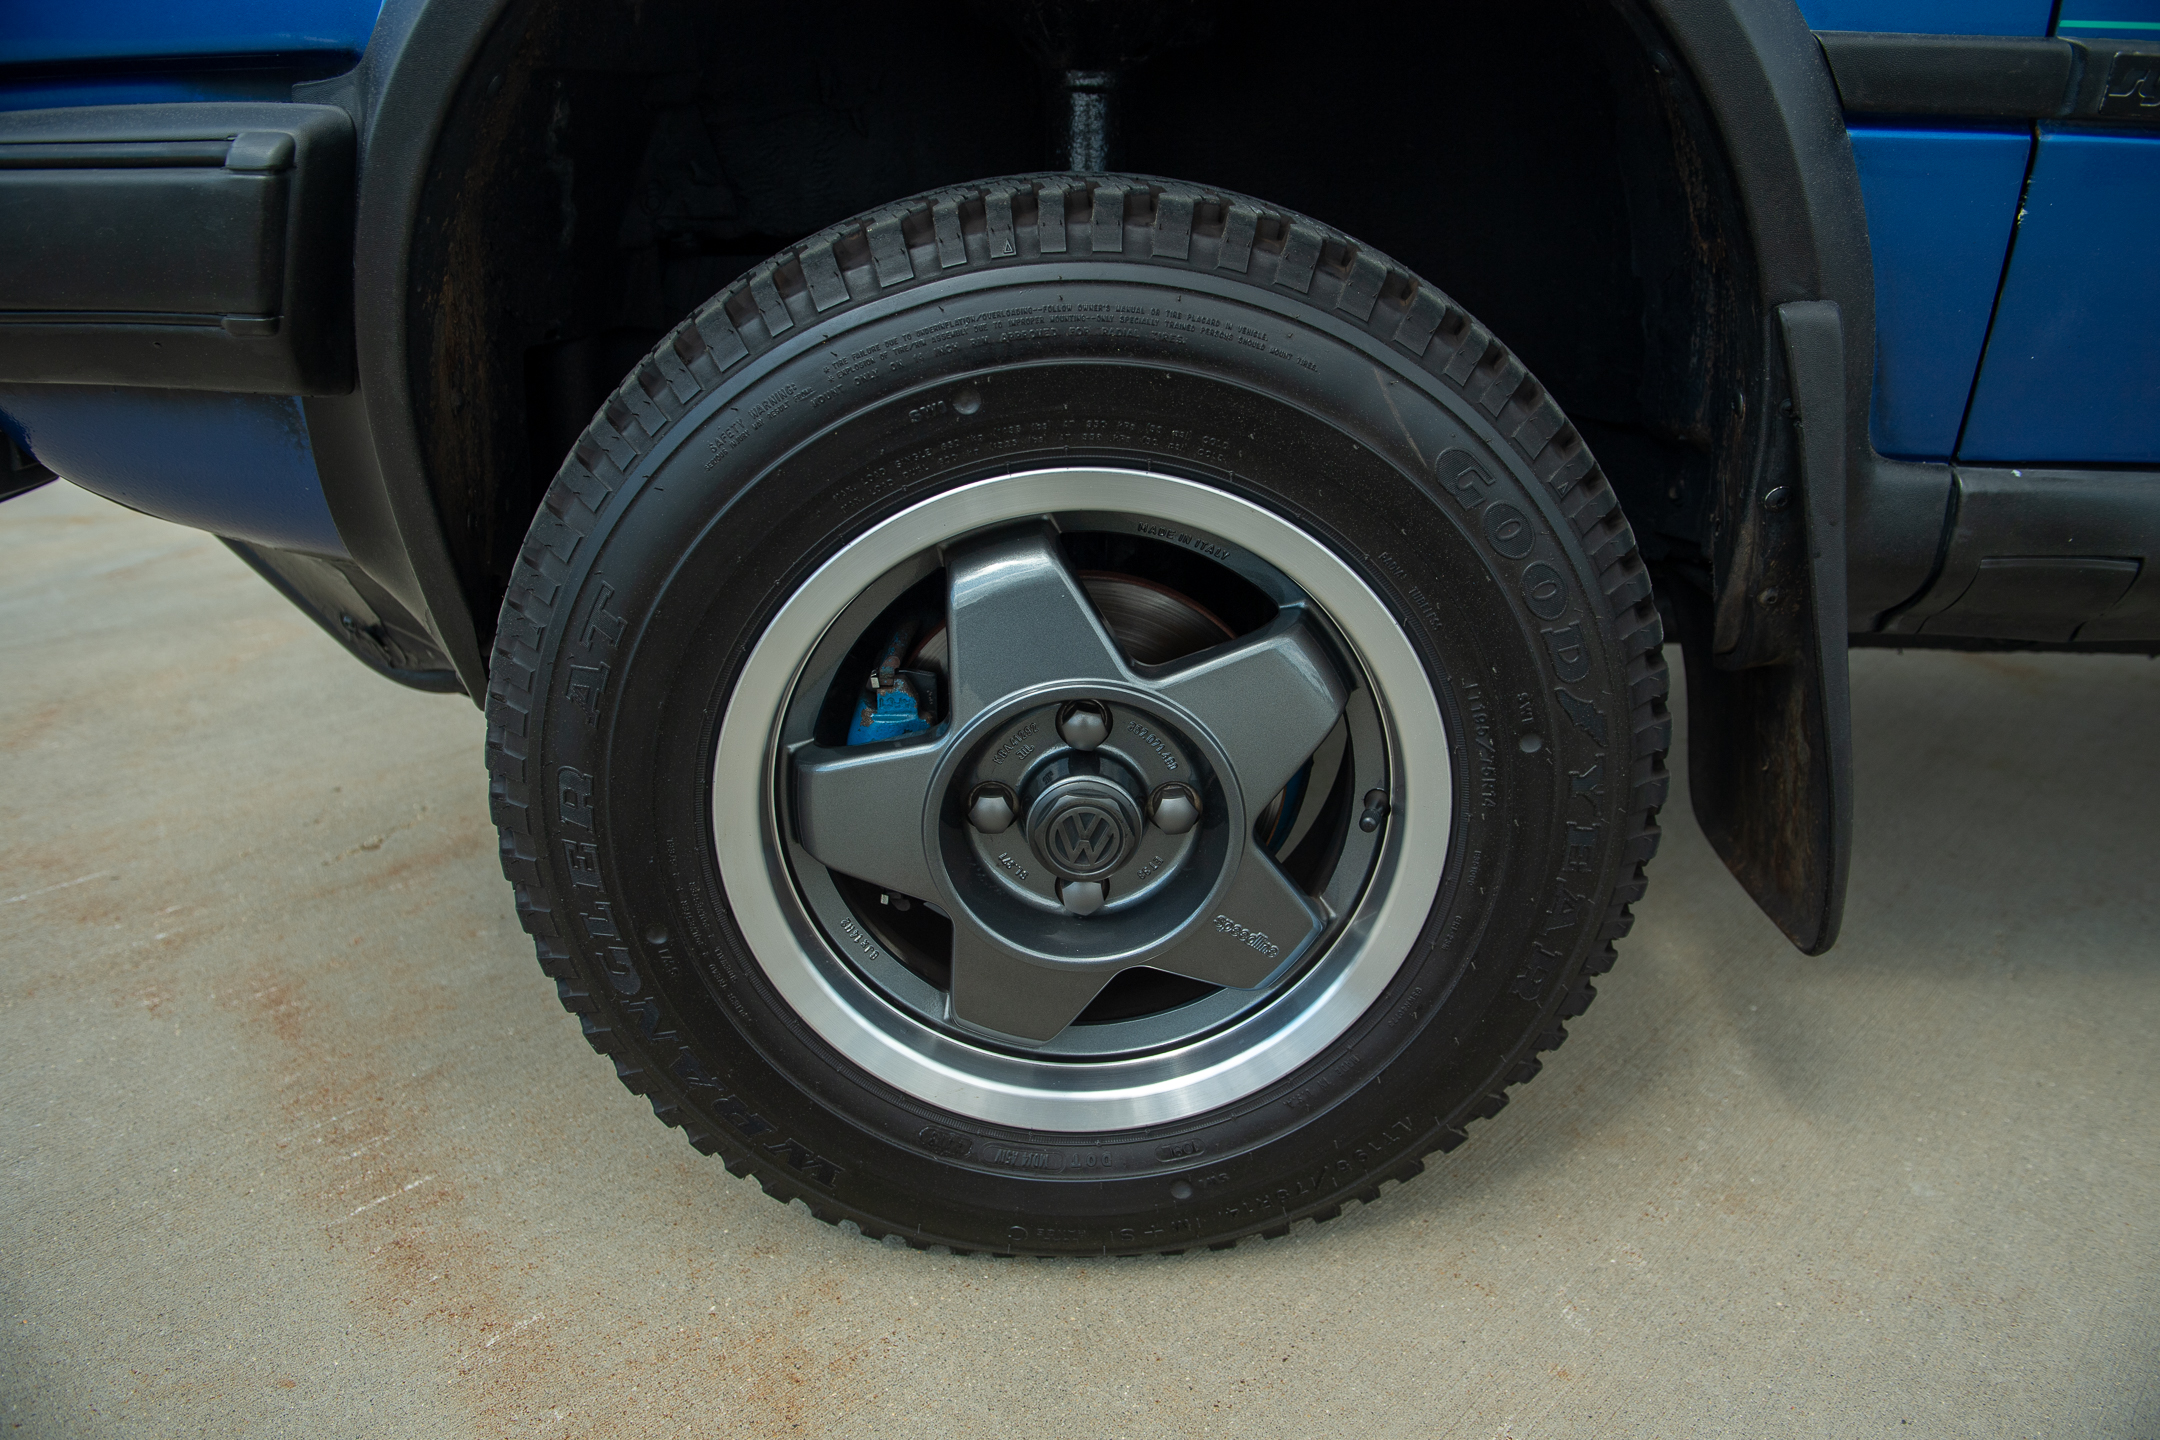 Volkswagen Golf Country wheel and tire